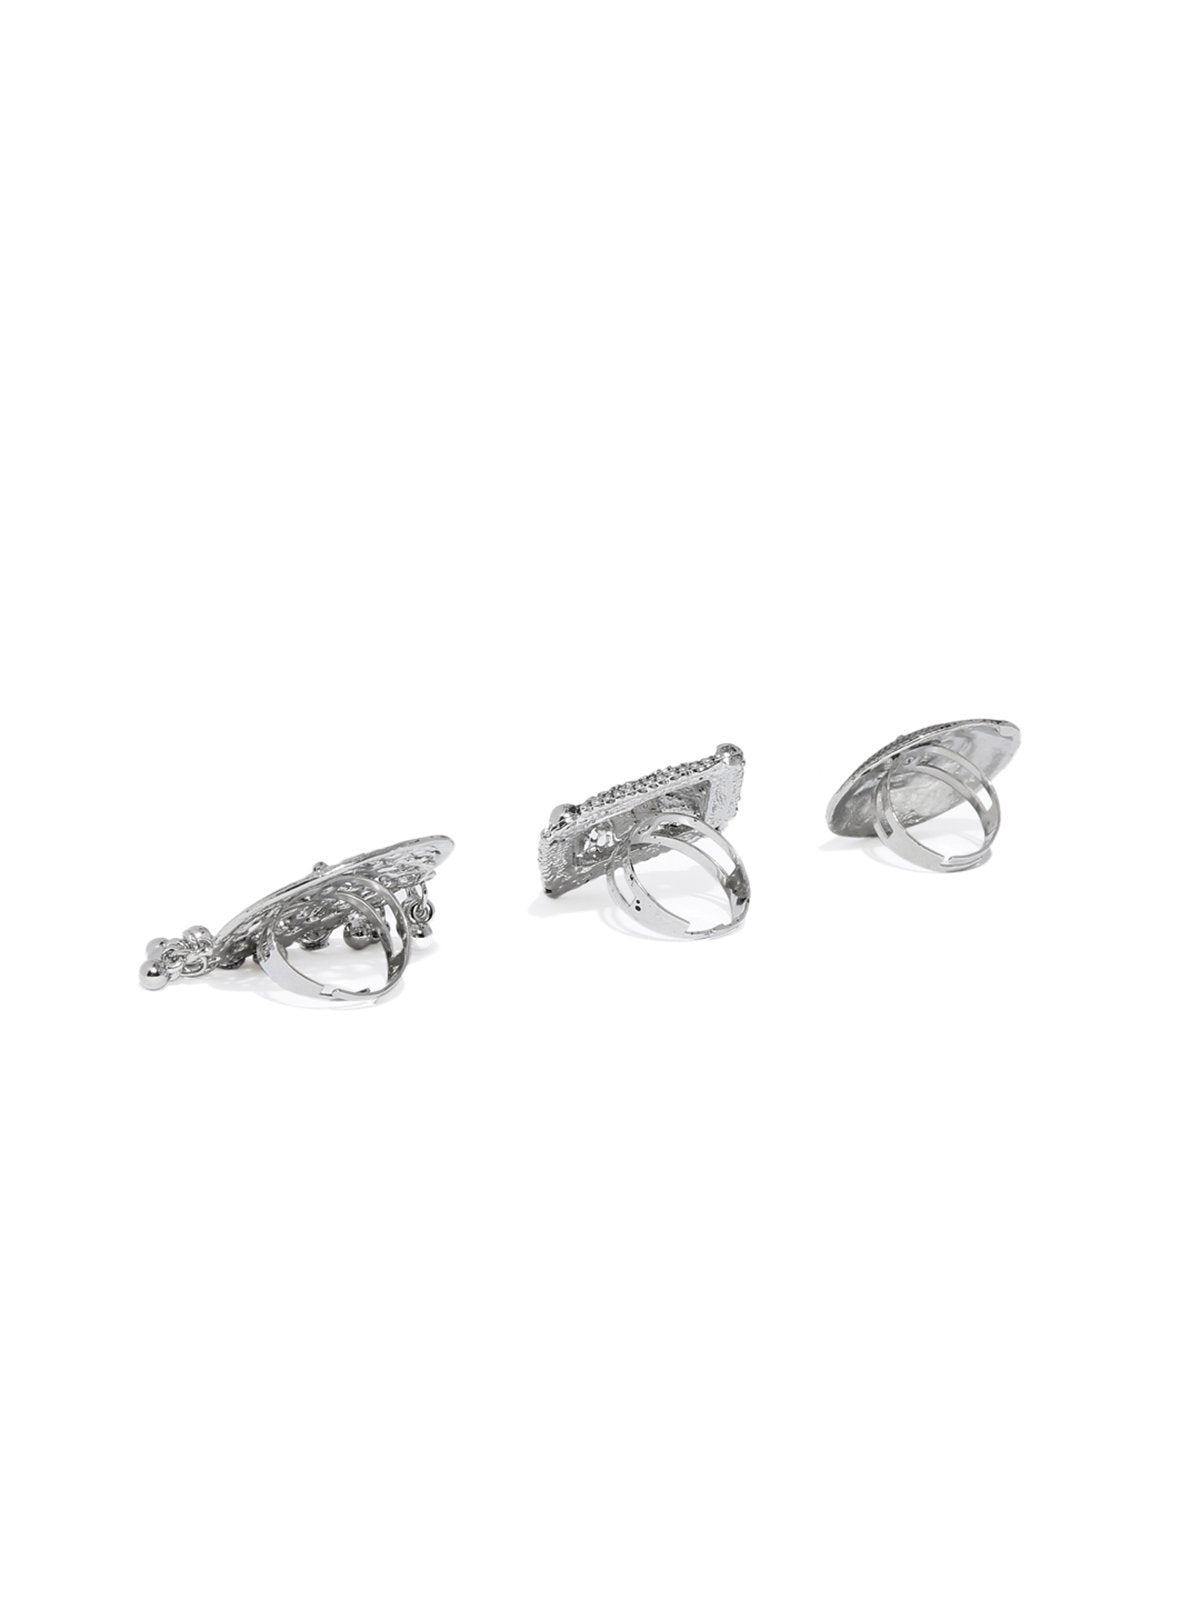 Combo Of 3 Antique Silver Tone Finely Detailed Finger Rings